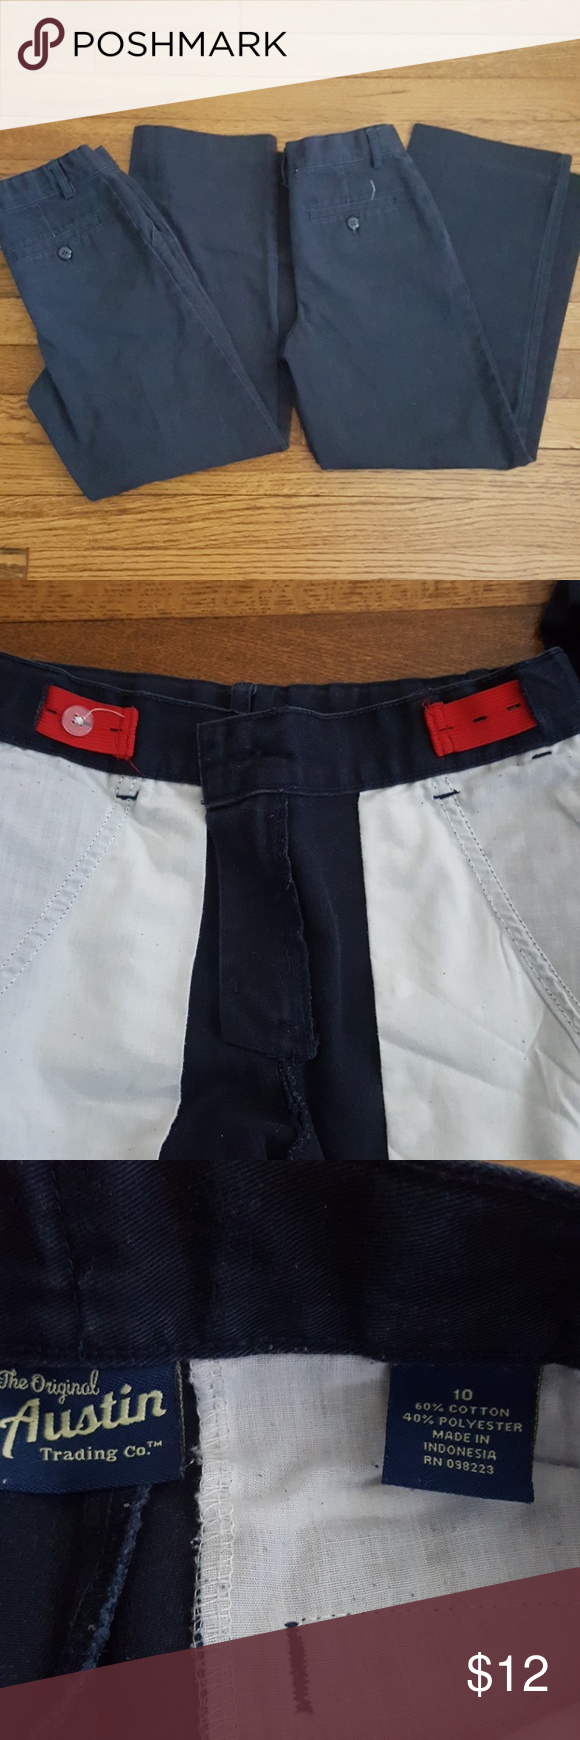 Austin Trading Company Navy Khaki Pants Two (2) Pair Of